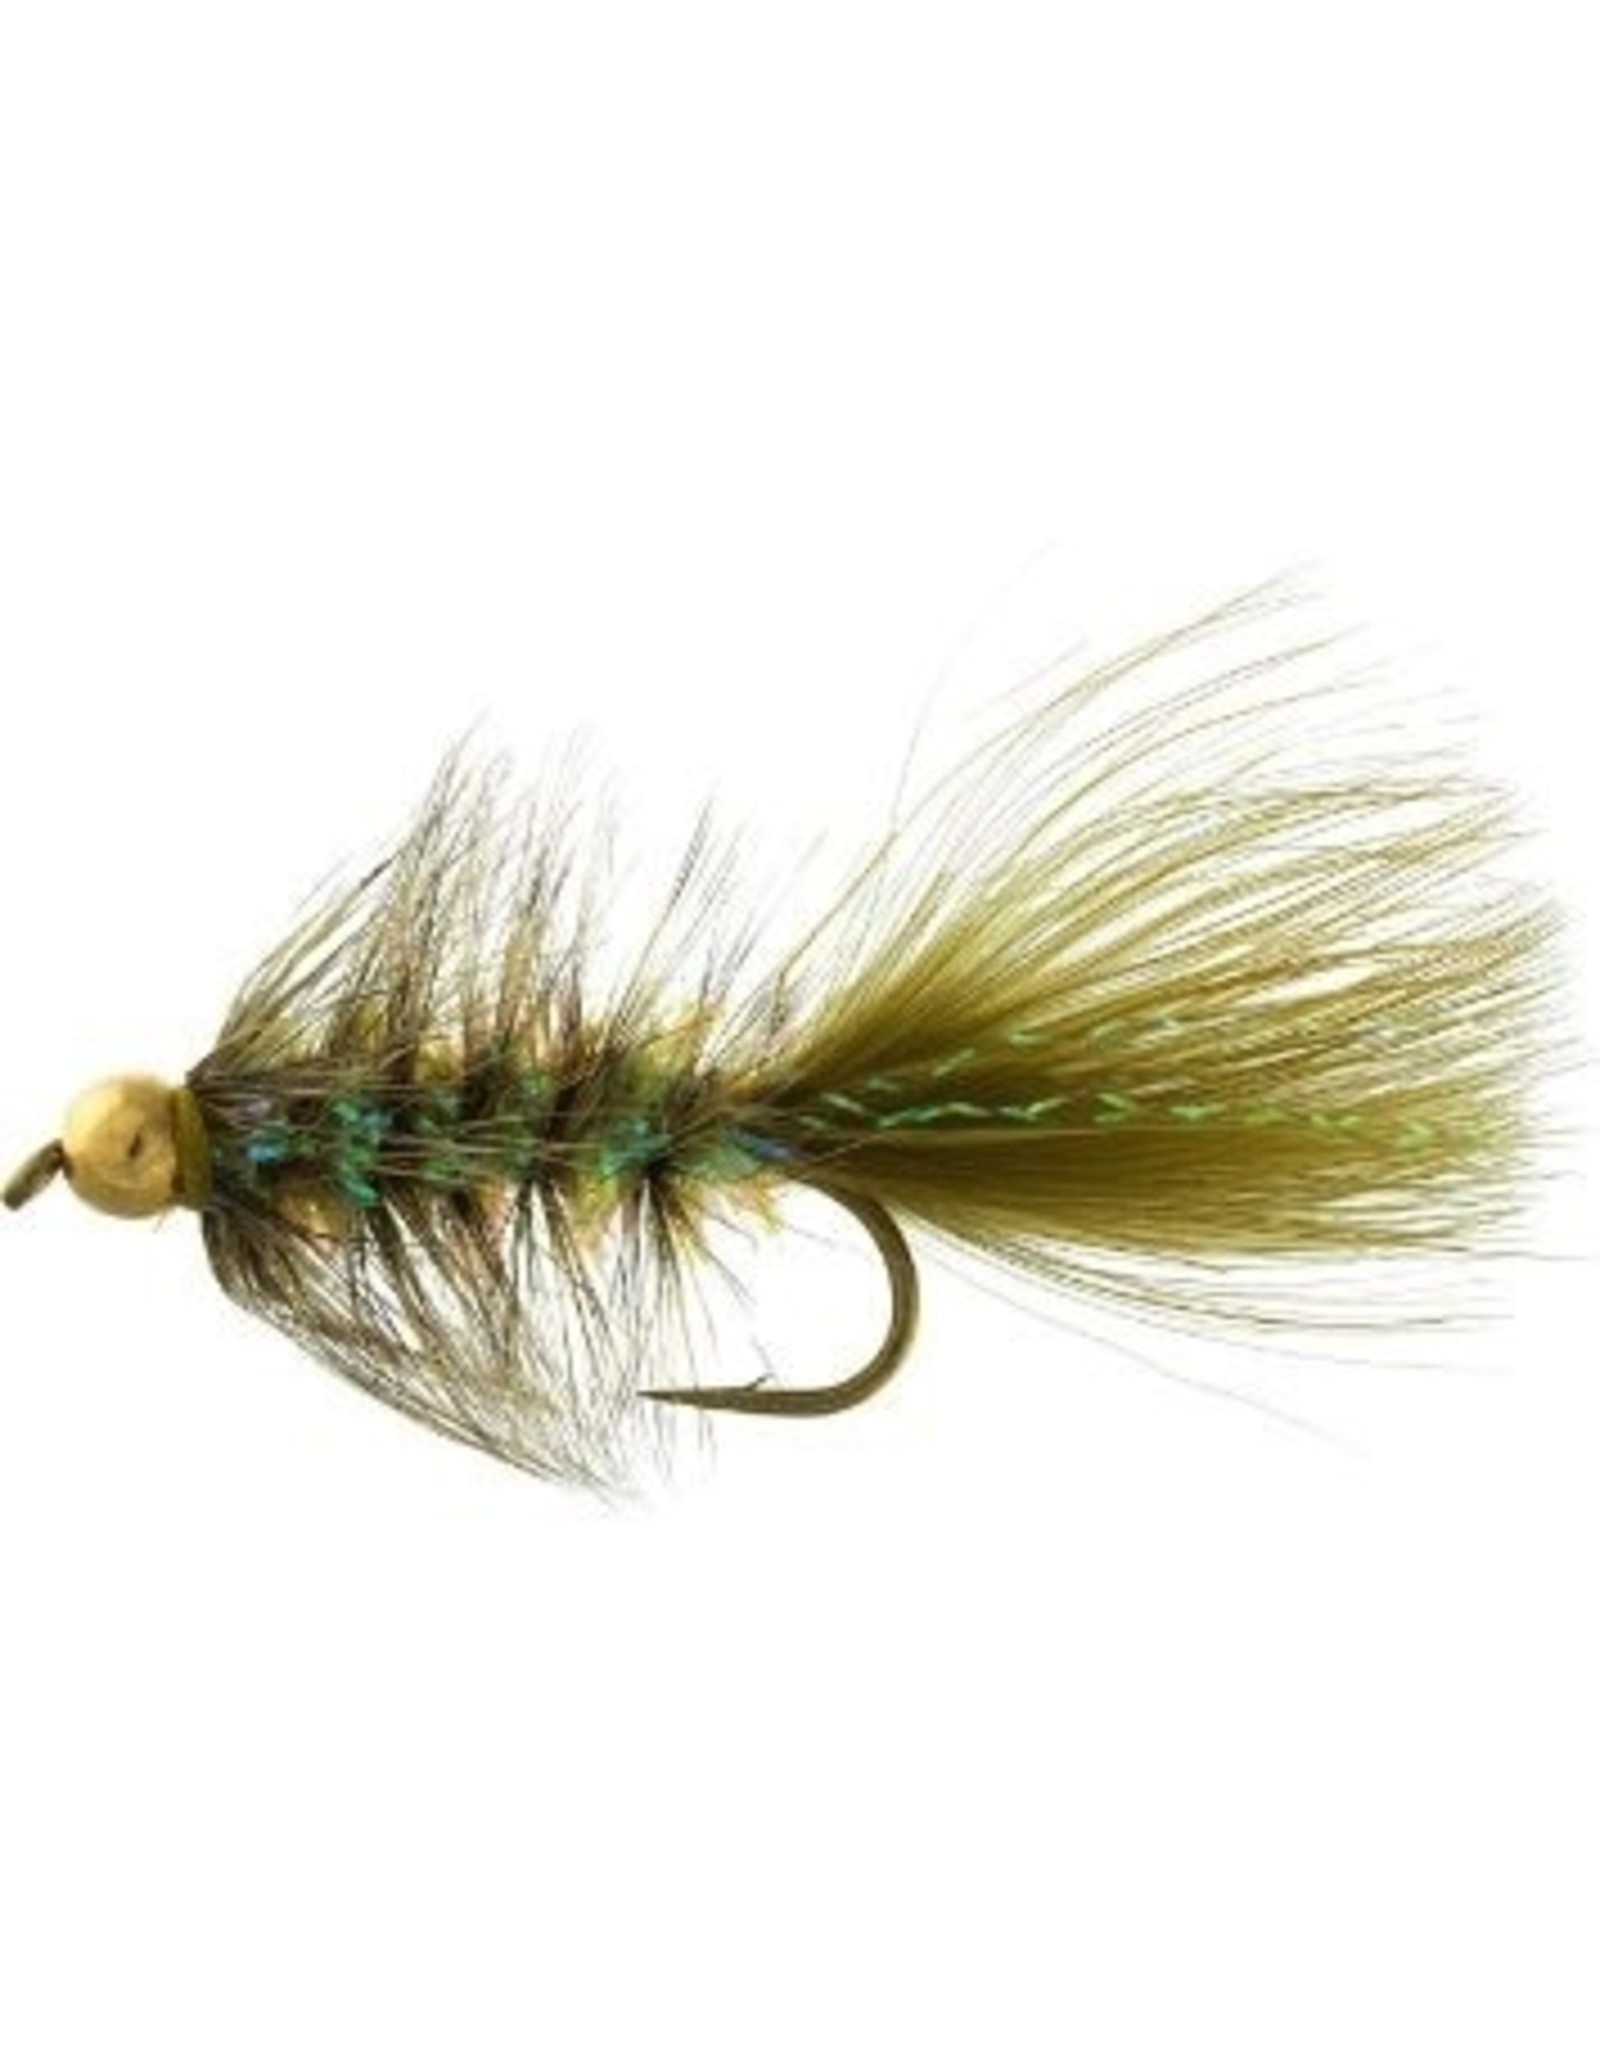 Umpqua Gold Bead Crystal Bugger (2 Pack)